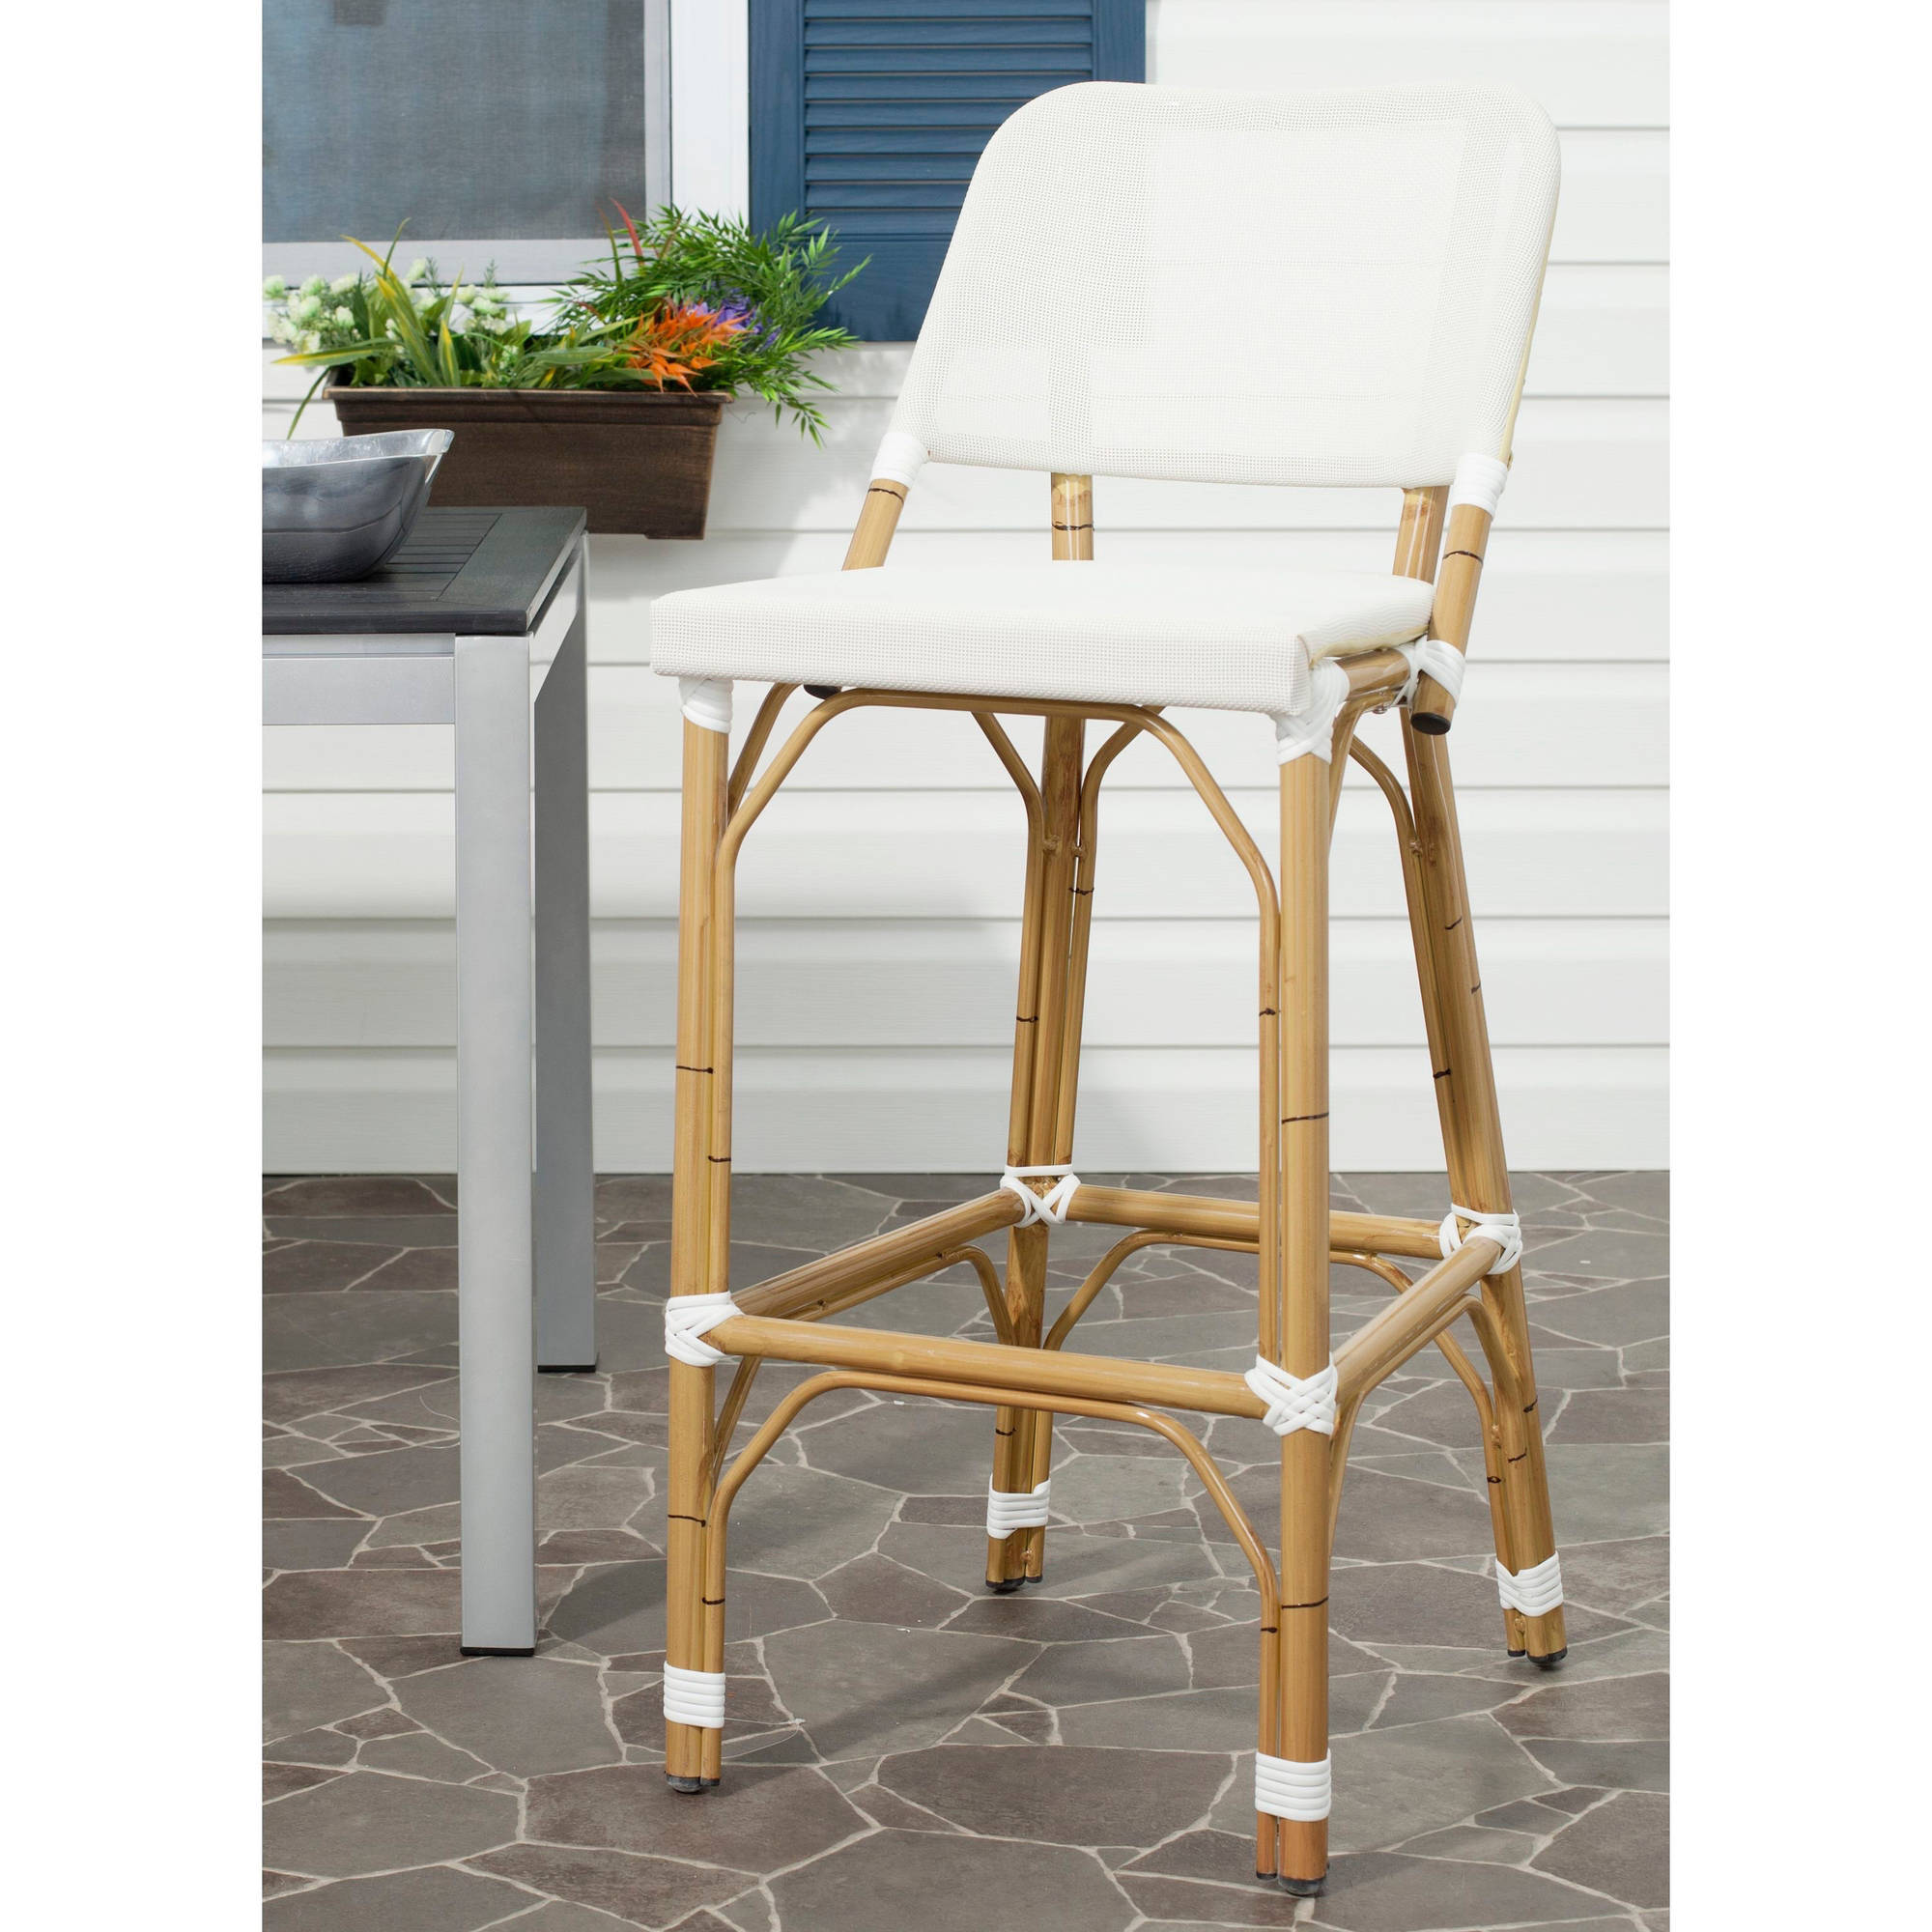 Safavieh Deltana Wicker Indoor-Outdoor Barstool